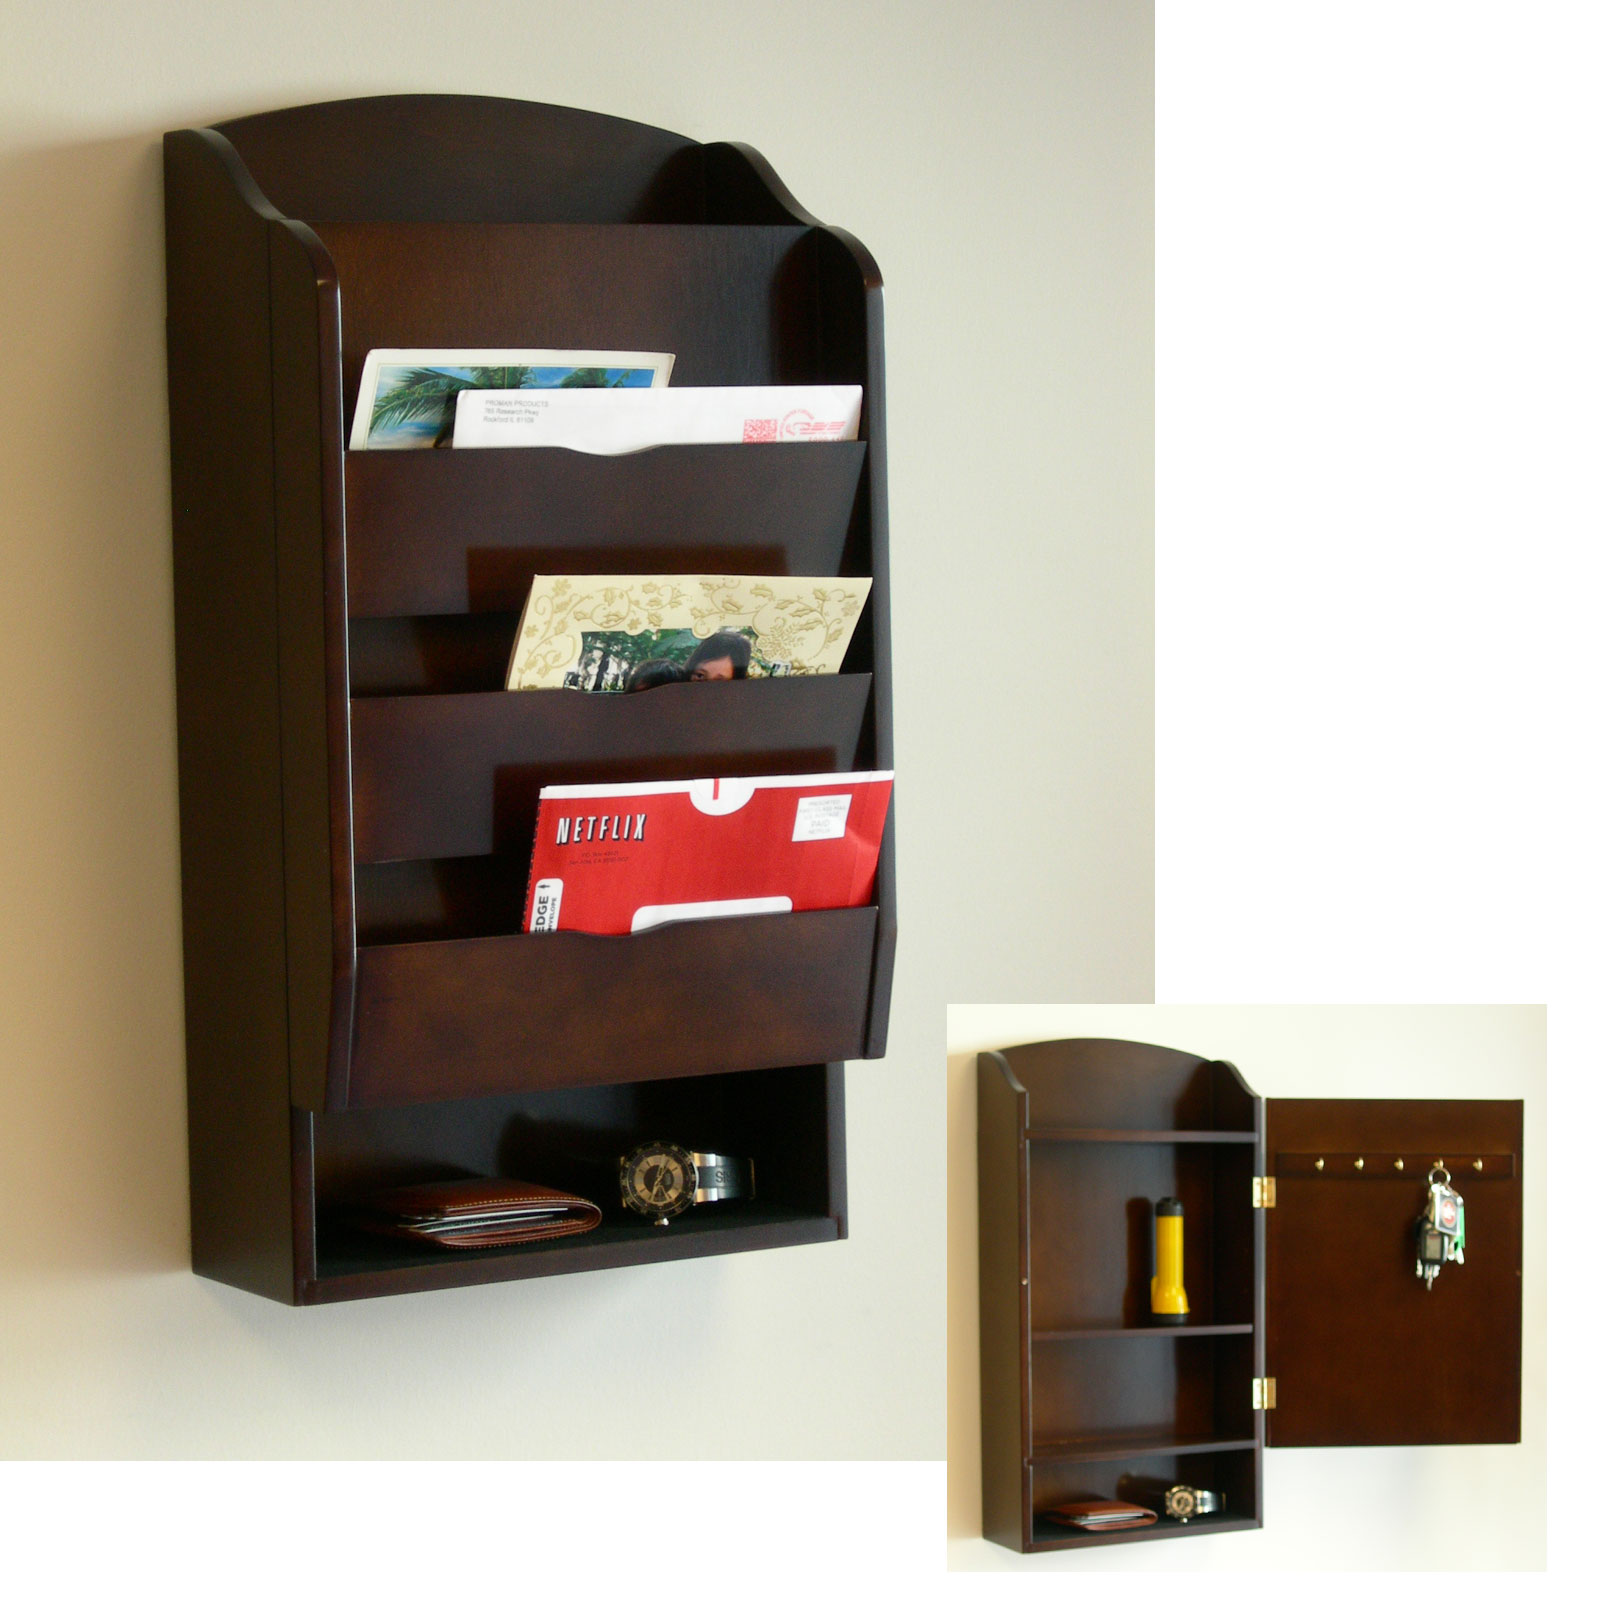 Wall Mounted Wood Mail Organizer With Shelf And Storage E Addition Behind It